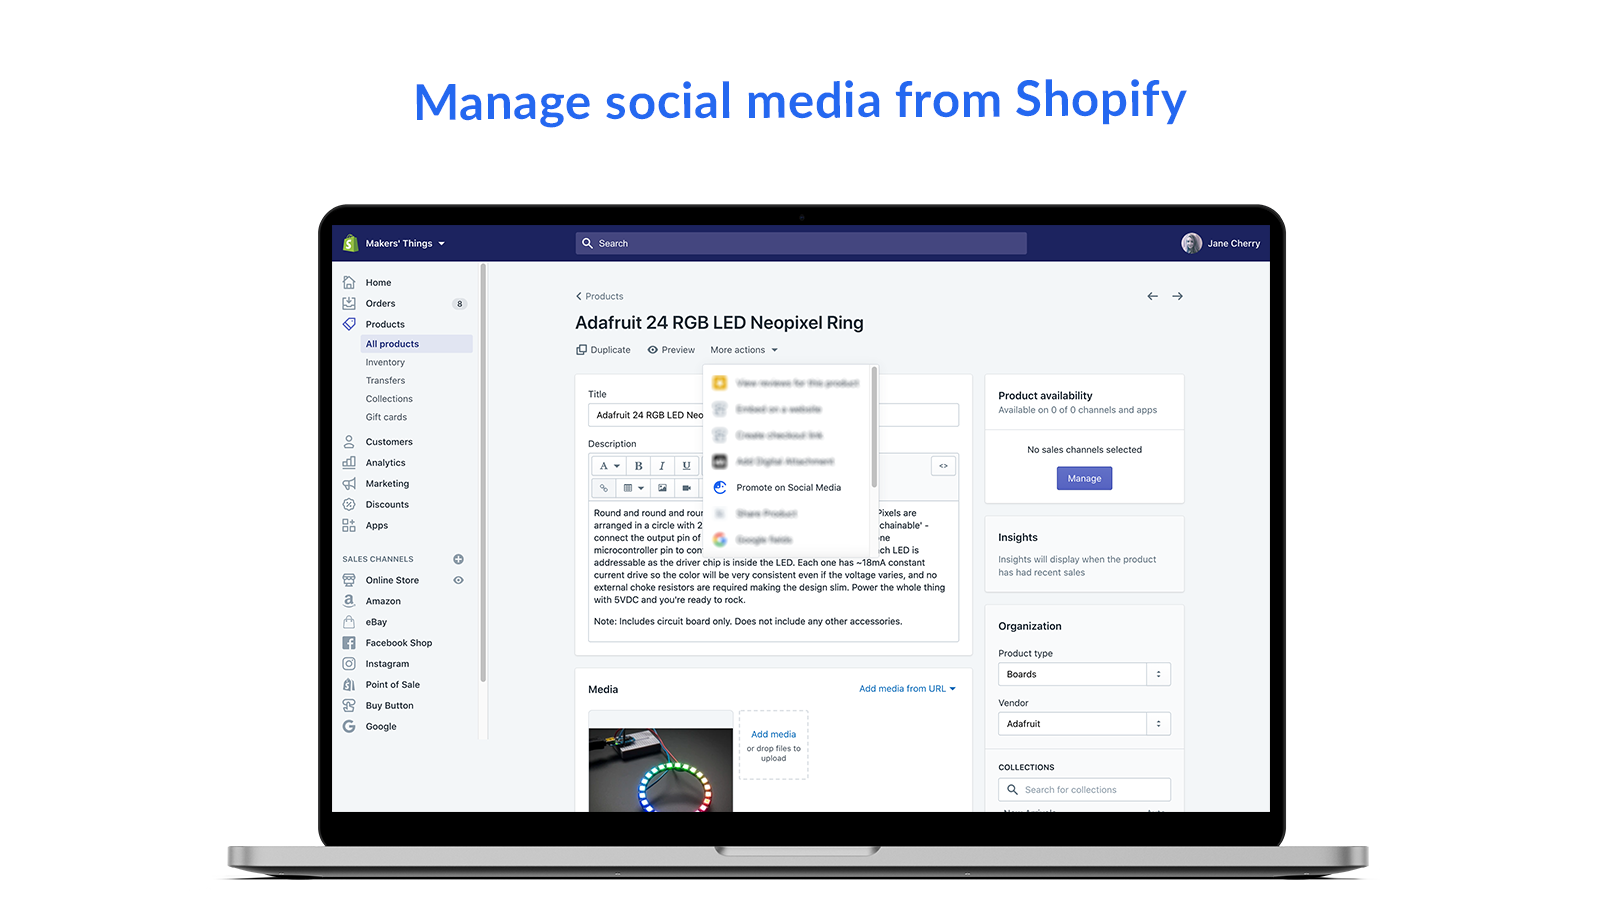 Manage social media from Shopify - Comity